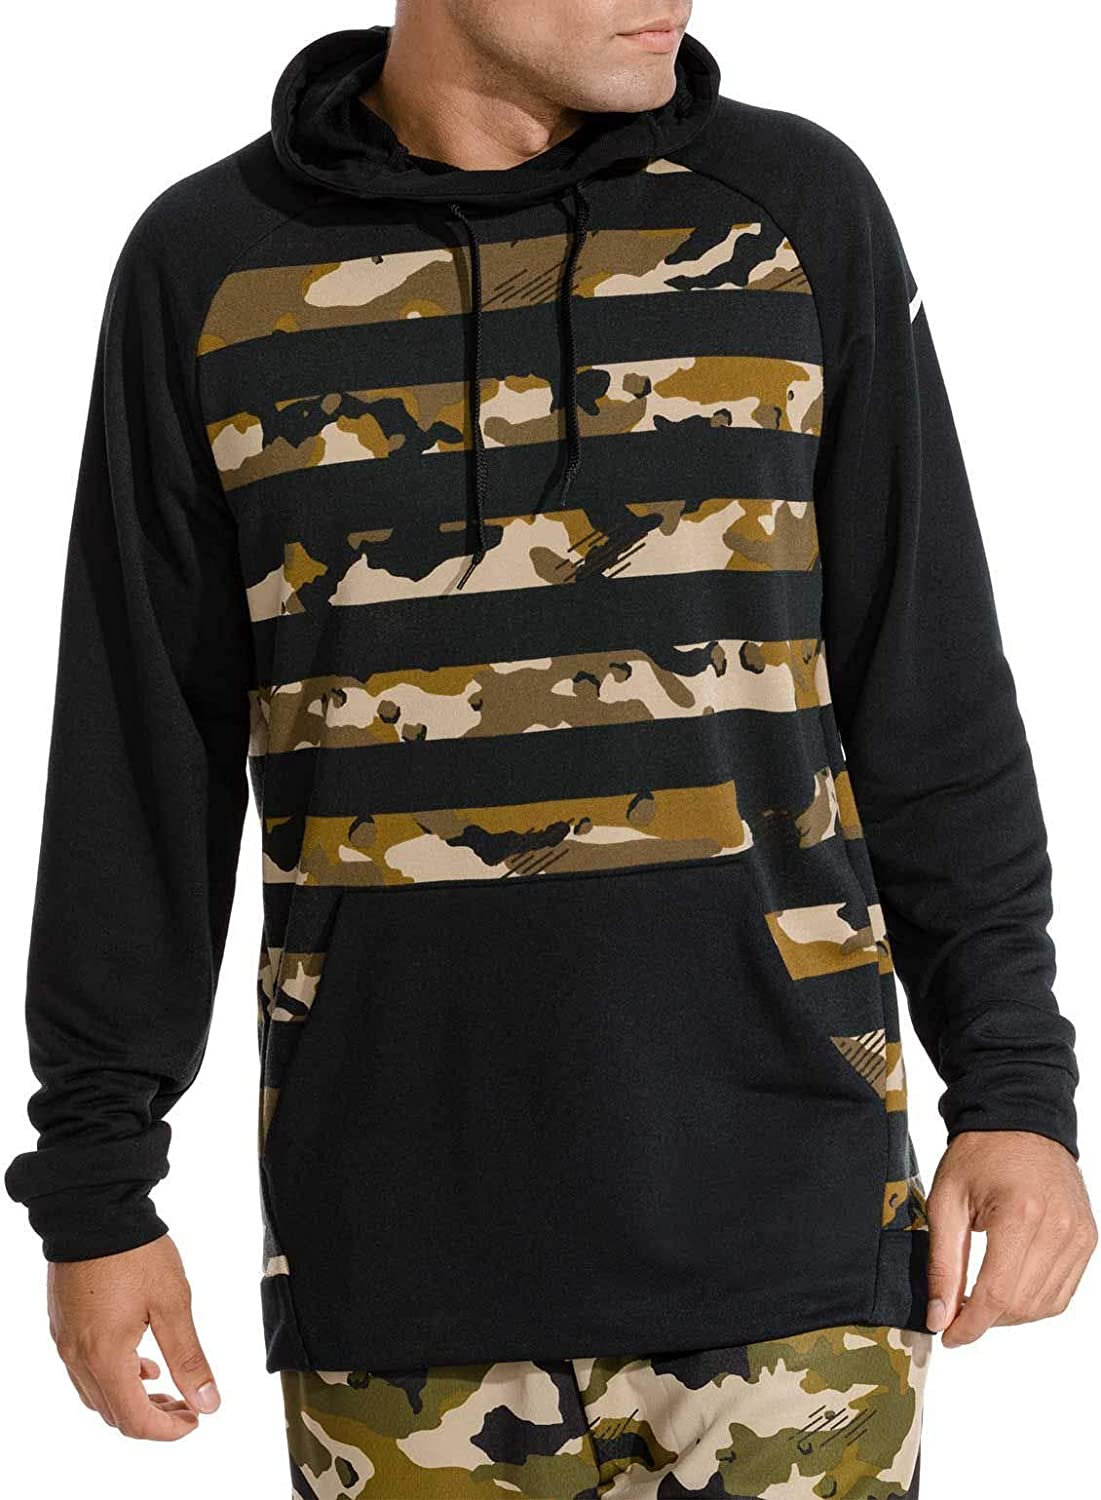 Nike Jacksonville Mall Men's Dry Fabric Black Hoodie Our shop most popular Training Full-Zip